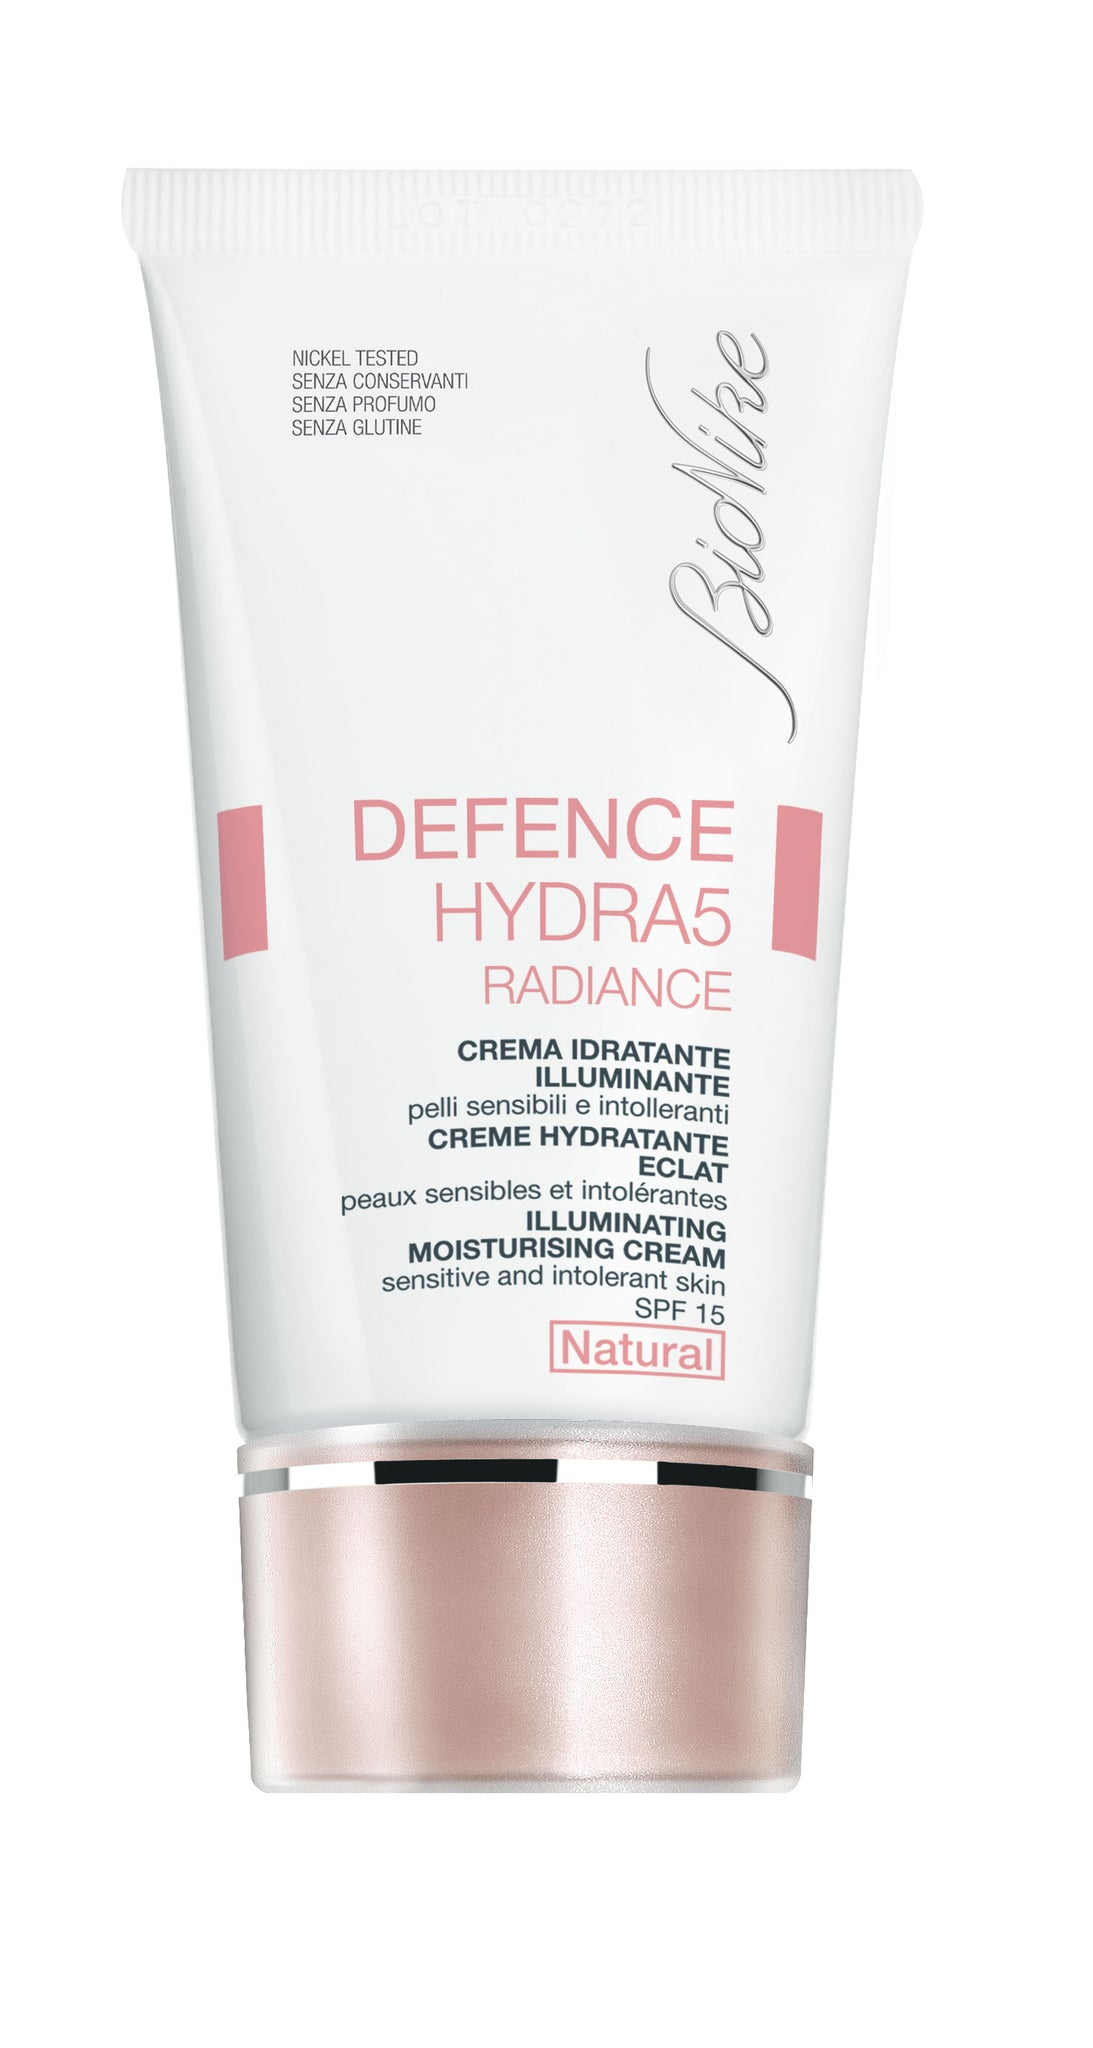 DEFENCE HYDRA5 Radiance BB Cream (Illuminating Moisturising Cream SPF15) - Natural